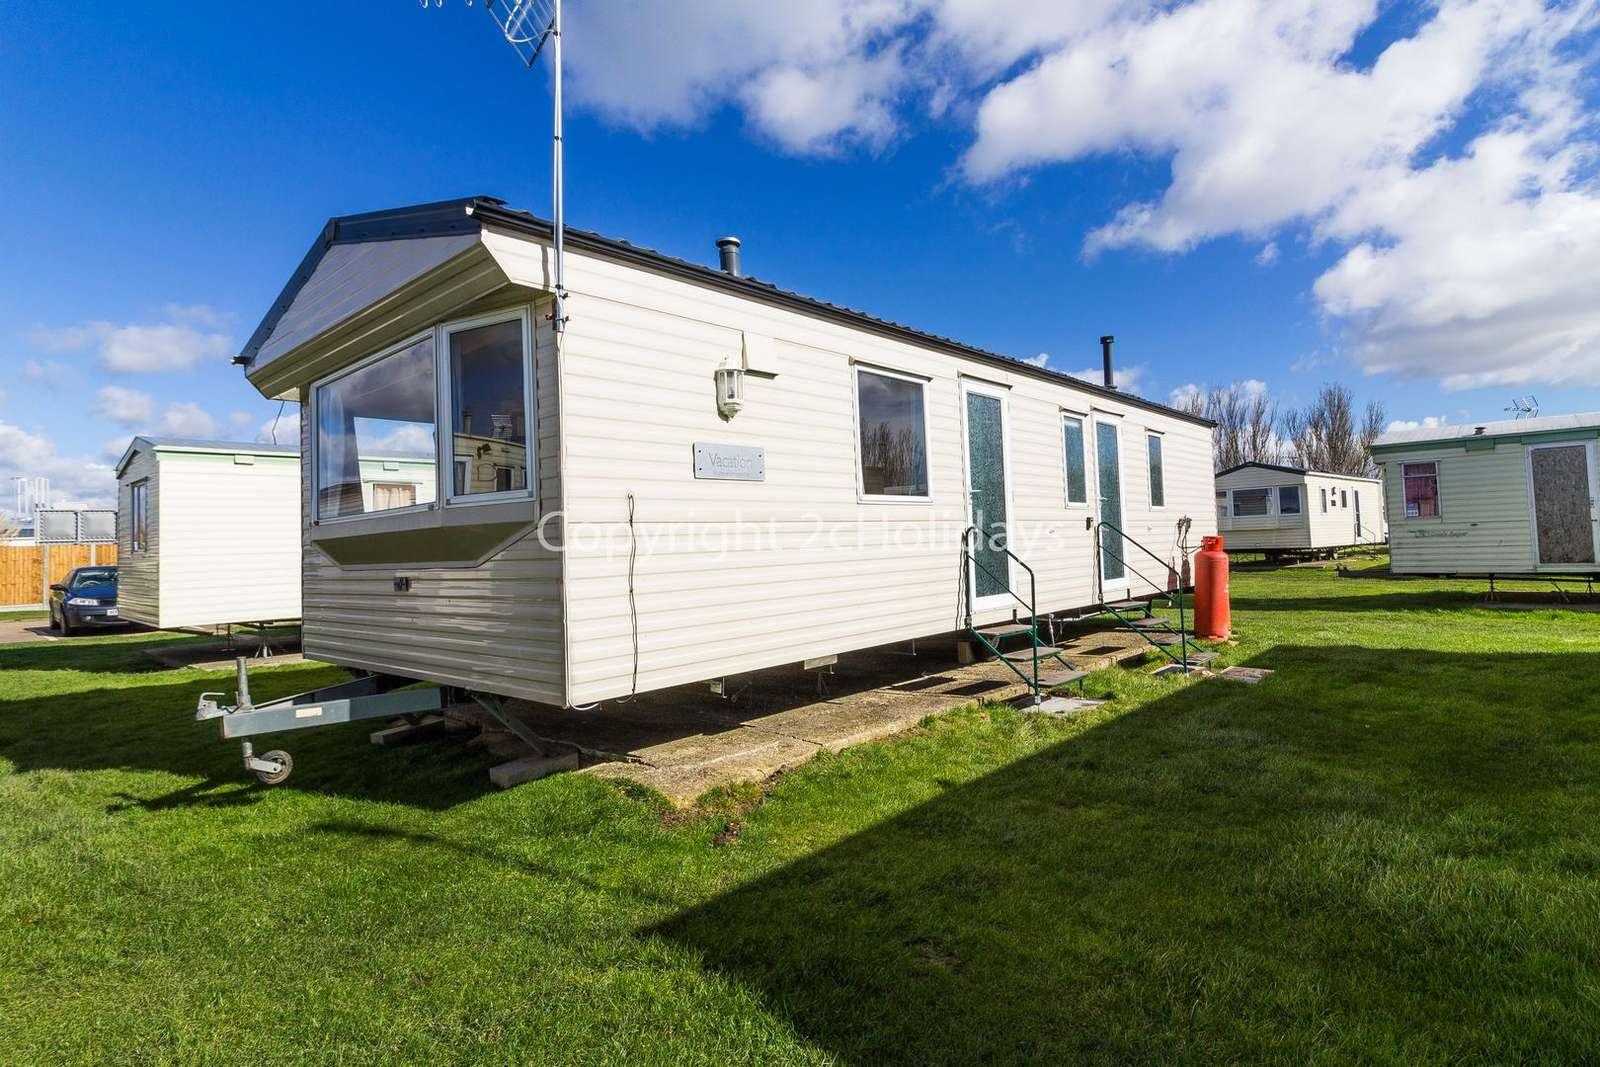 Lovely caravan and spoilt for choice with access to 3 different holidays parks!